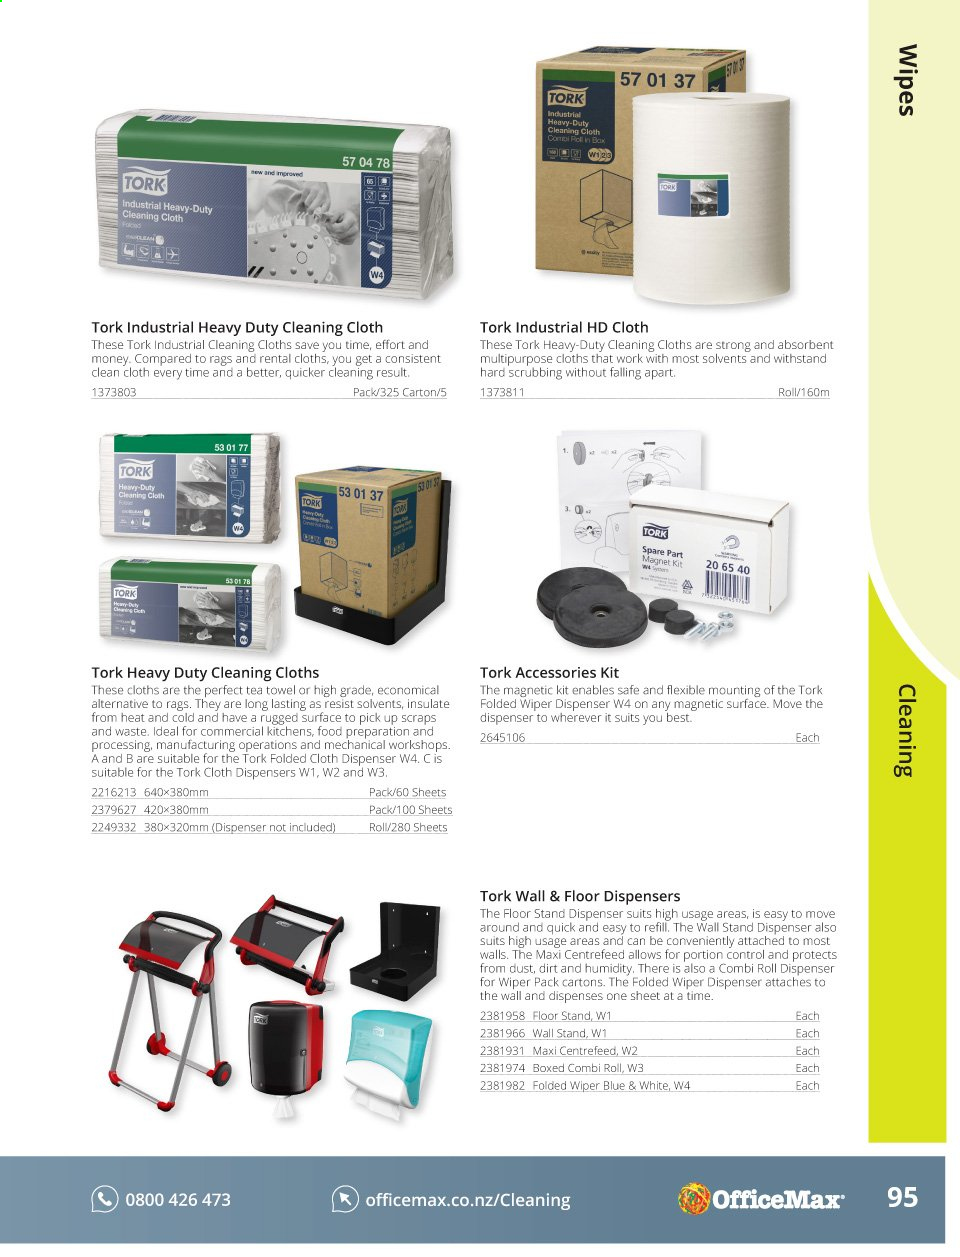 OfficeMax mailer - Sales products - dispenser, sheet, suits, tea, towel, refill. Page 97.